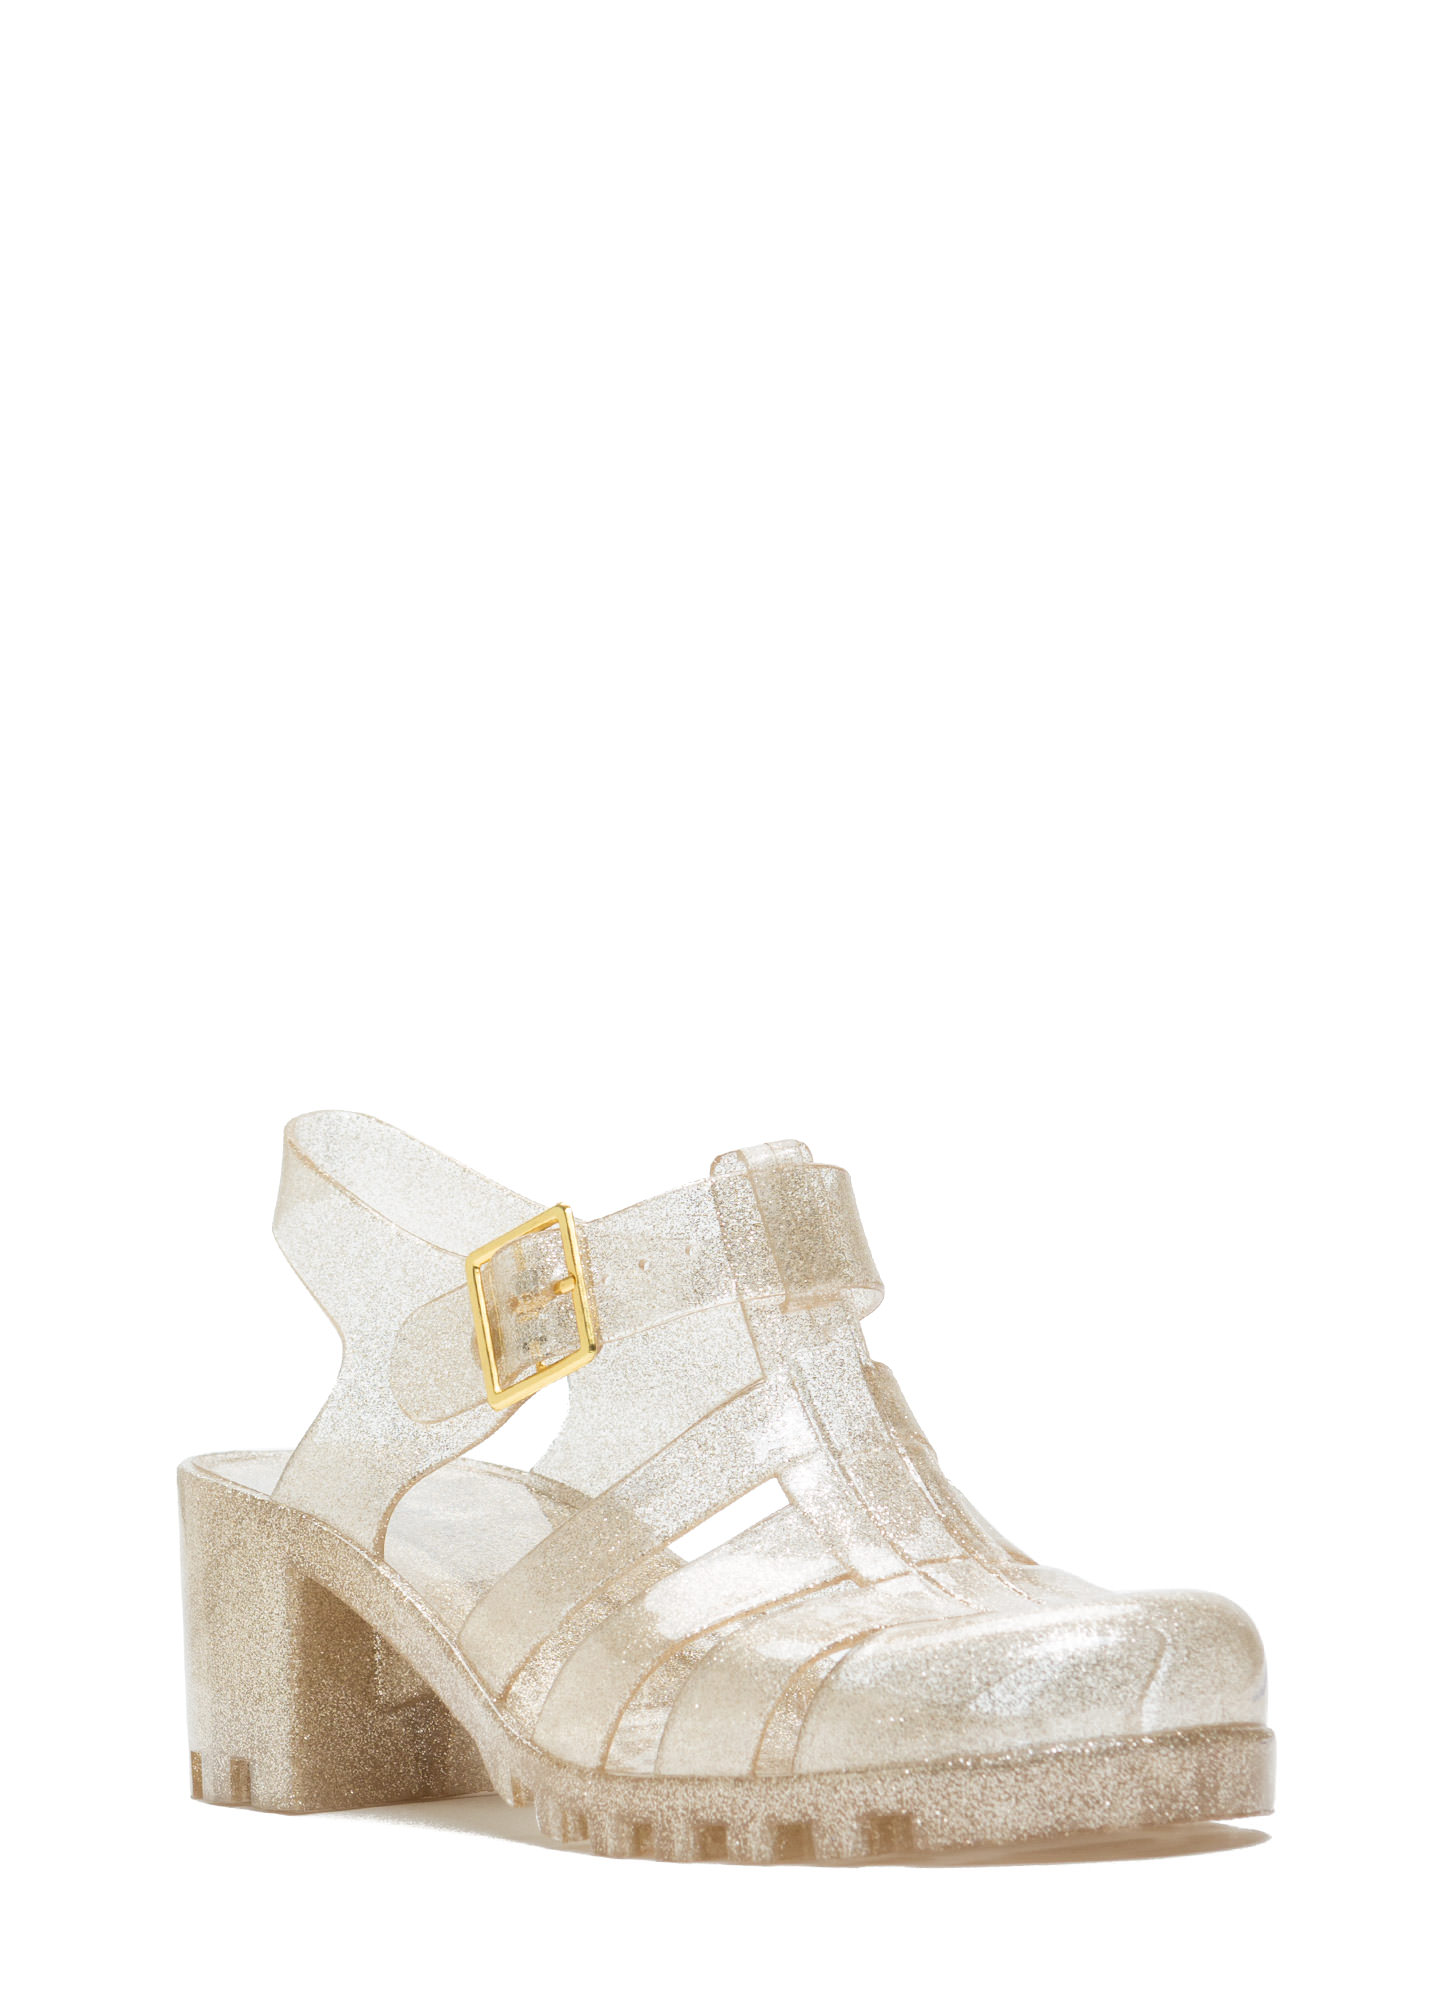 Totally Nineties Jelly Sandals GOLD